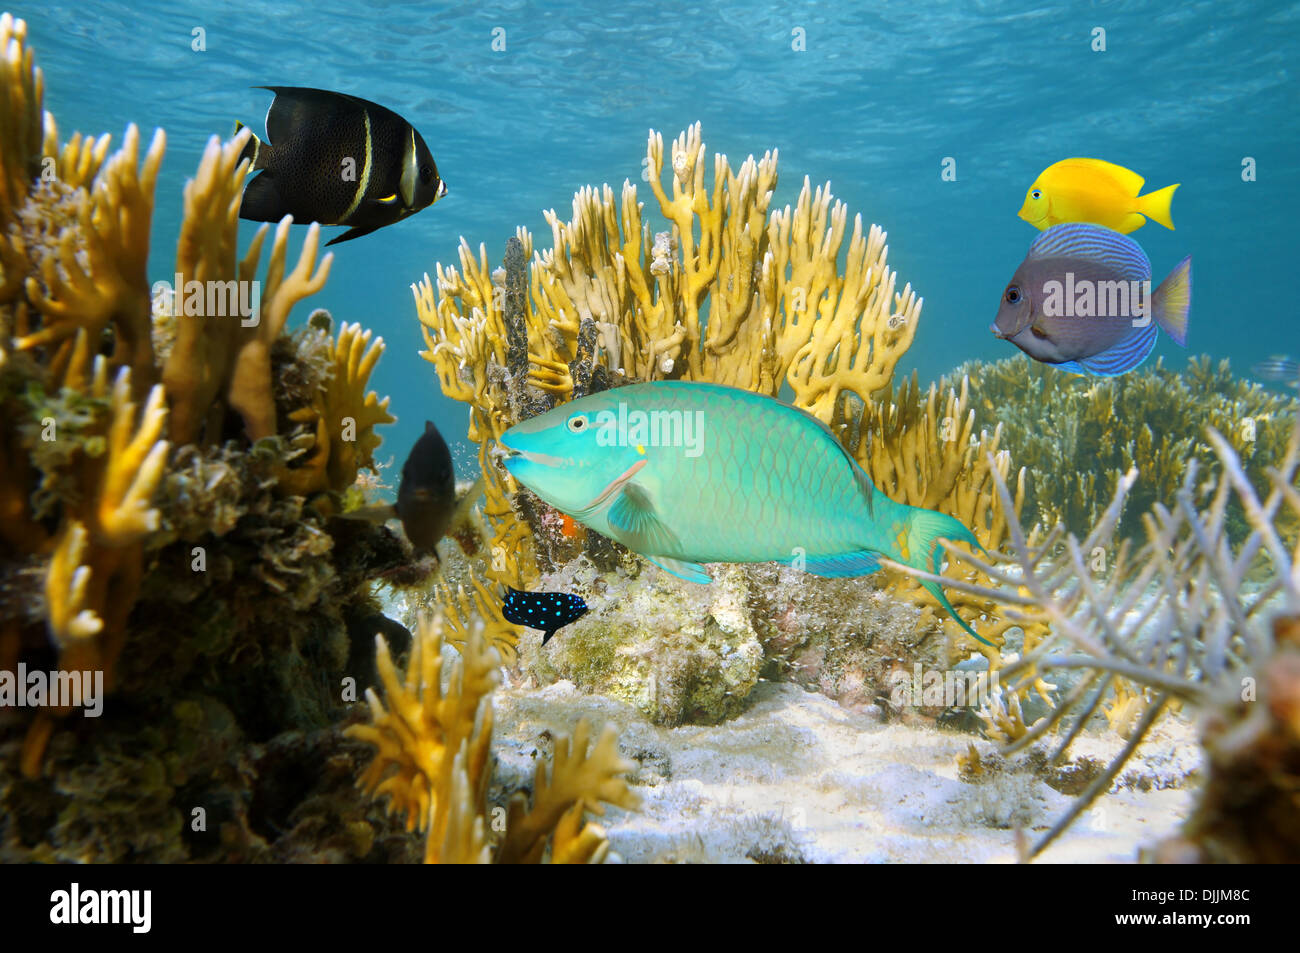 Undersea scene with colorful tropical fish in a coral reef, Atlantic ocean, Bahamas islands - Stock Image